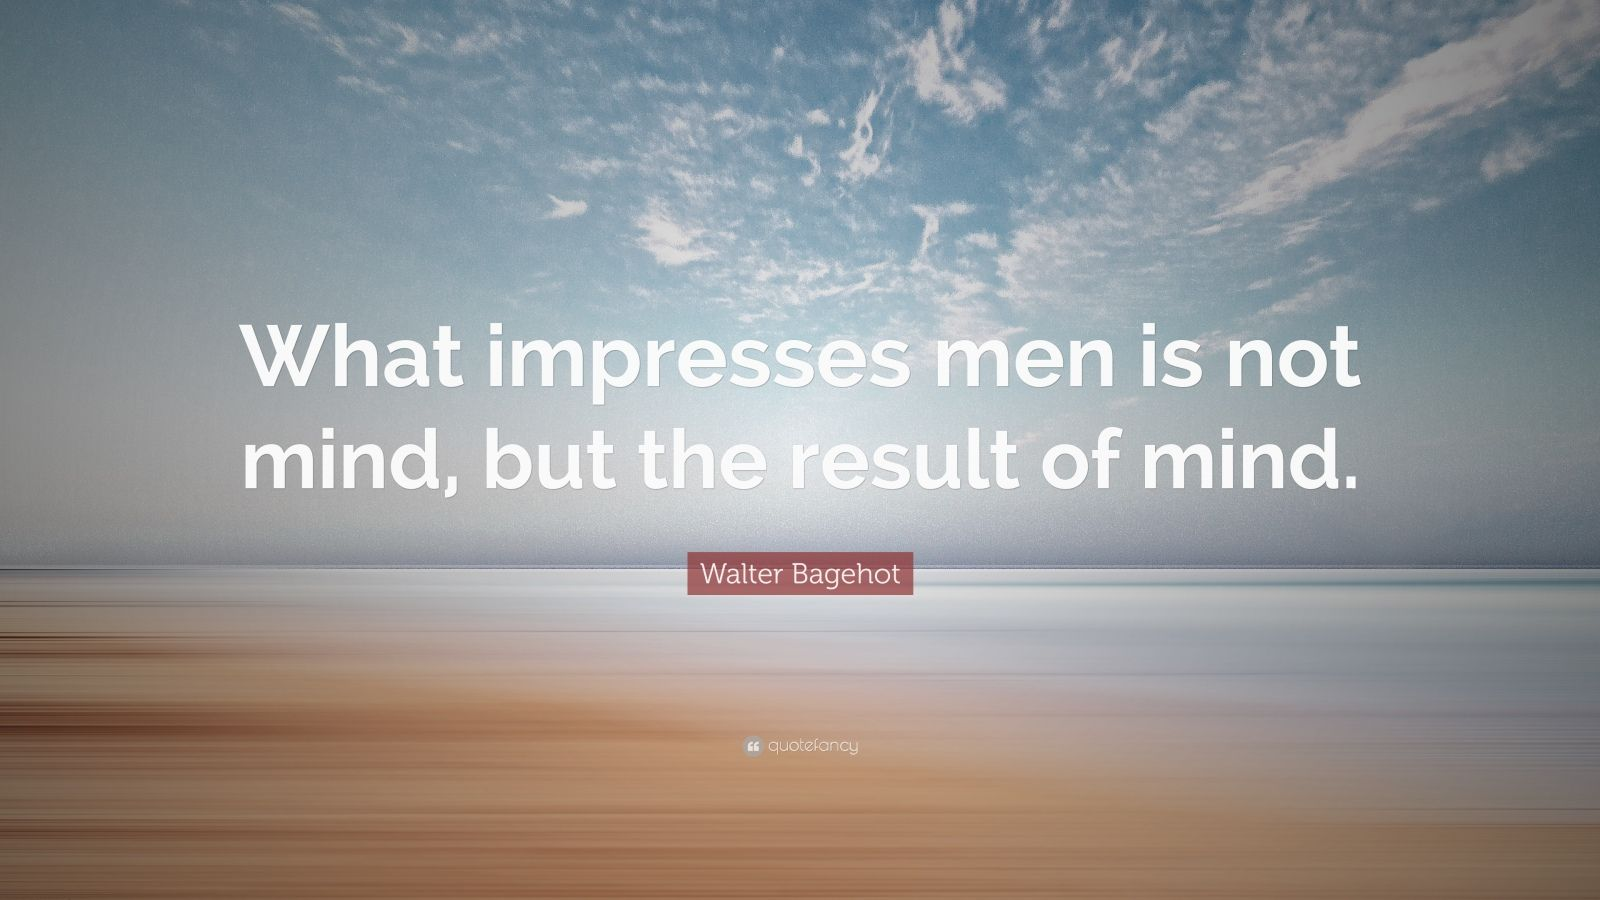 """Walter Bagehot Quote: """"What impresses men is not mind, but the result of mind."""""""